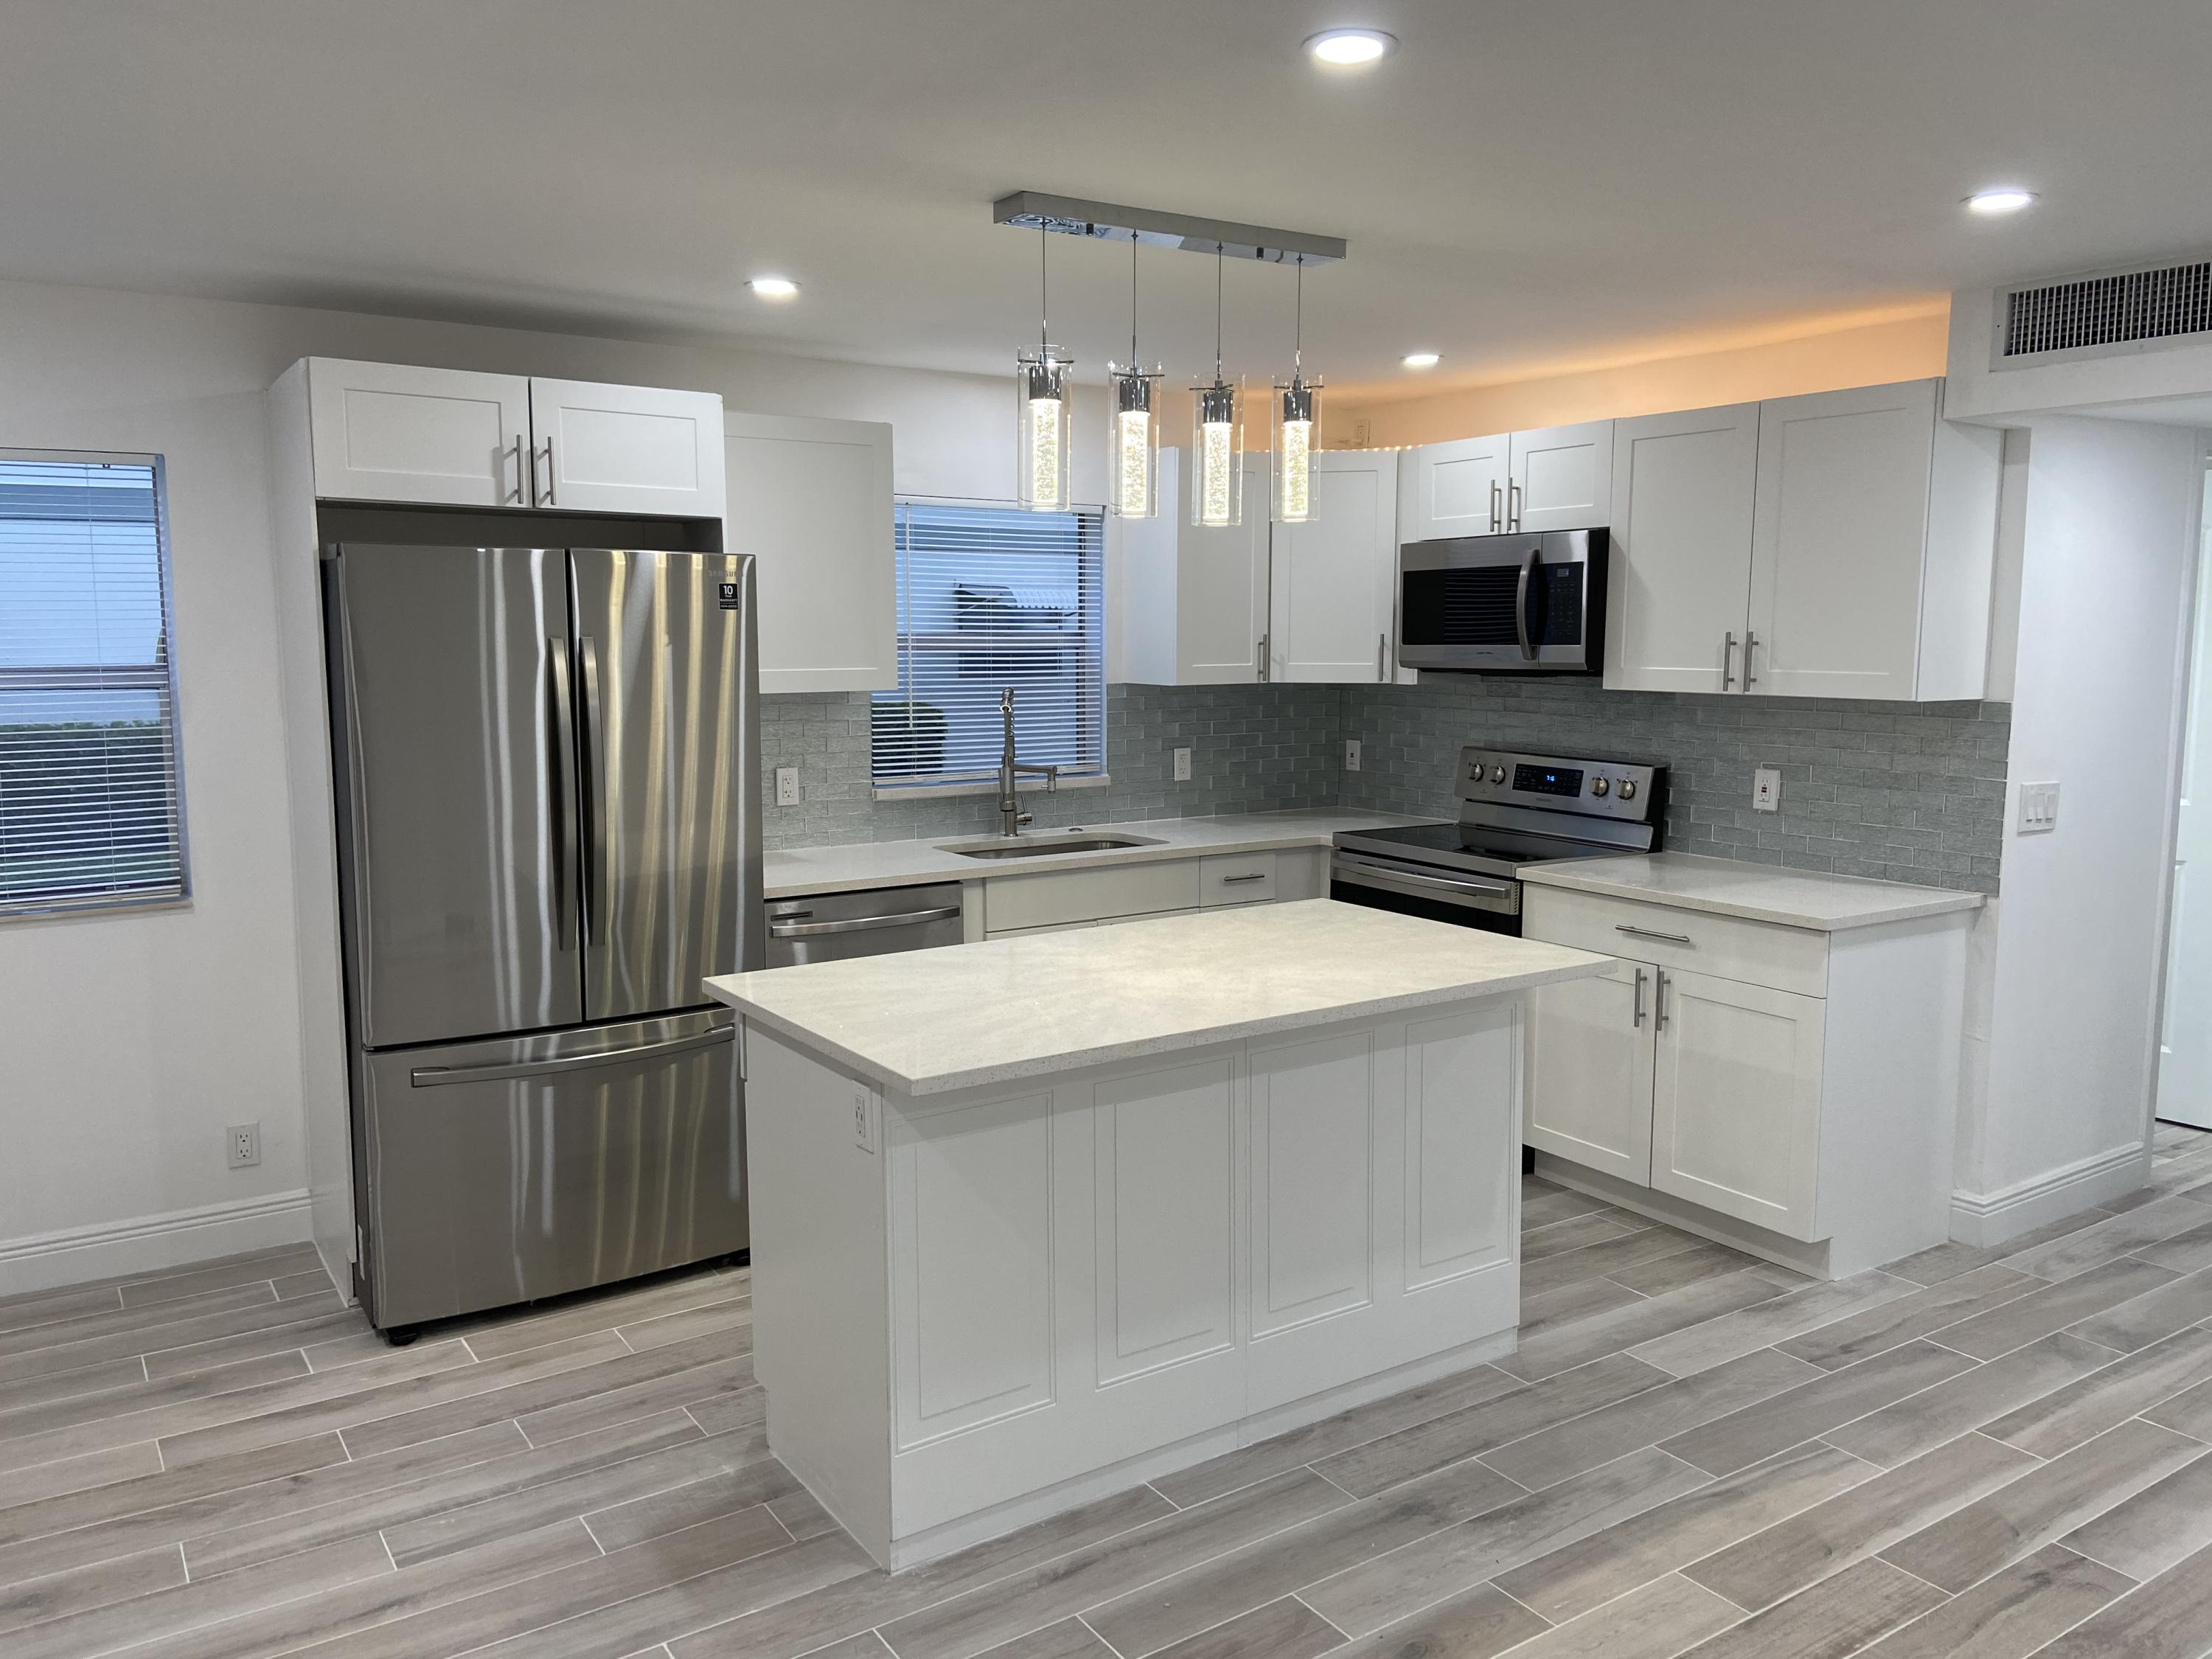 Home for sale in Kings Point Monaco Delray Beach Florida